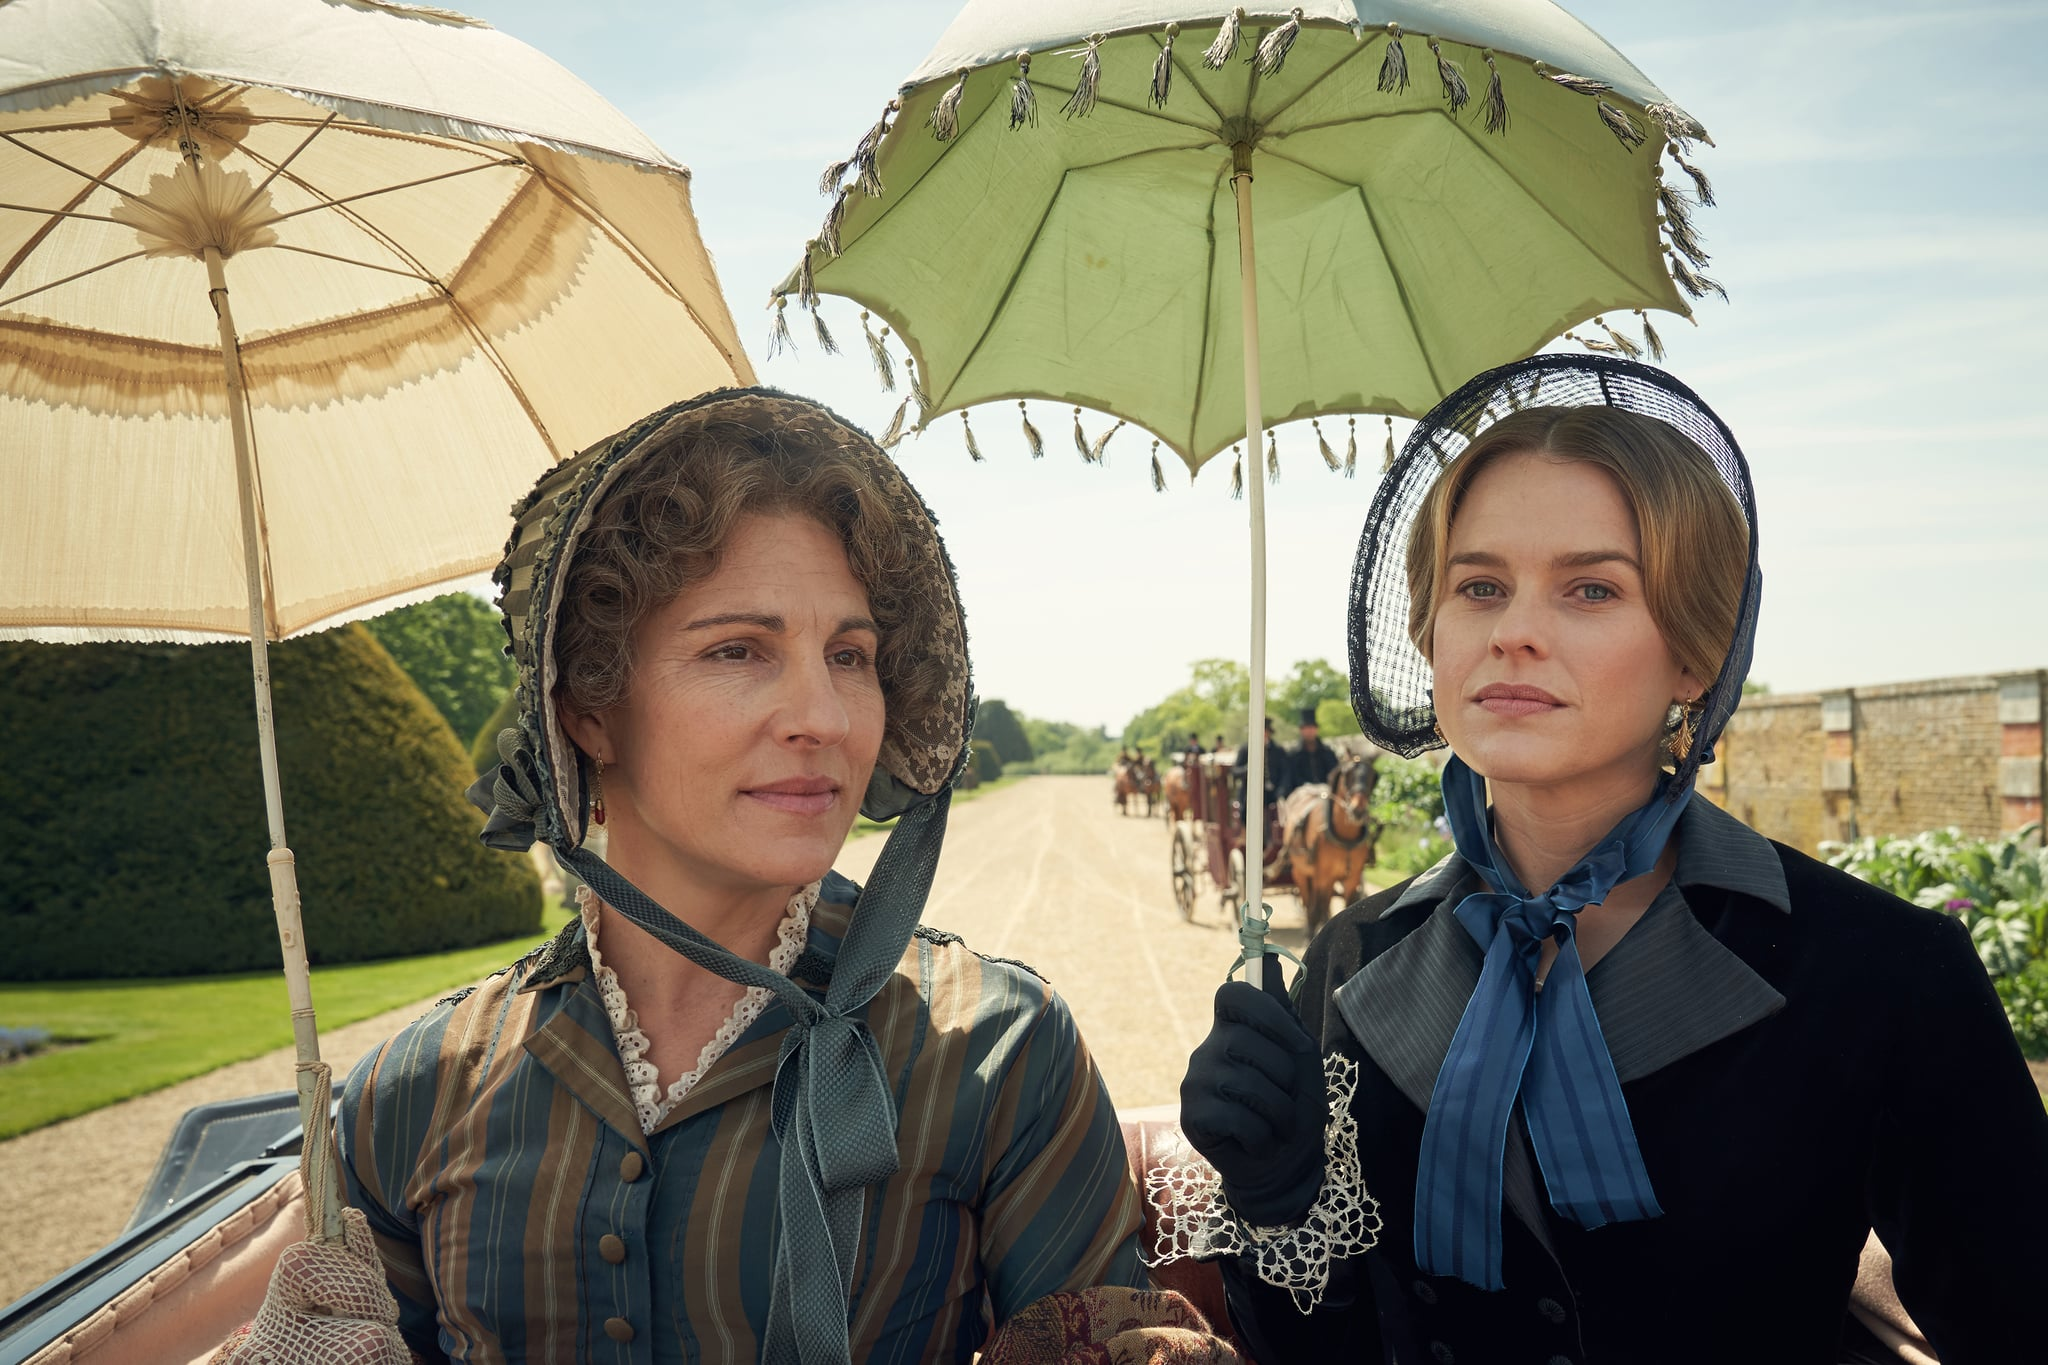 EMBARGIOED UNTIL 5.00PM ON 4TH jUNE 2019.CARNIVAL FILMS FOR ITVBELGRAVIAPictured:TAMSIN GREIG as Anne Trenchard and ALICE EVE as Susan Trenchard.This image is the copyright of Carnival Films.